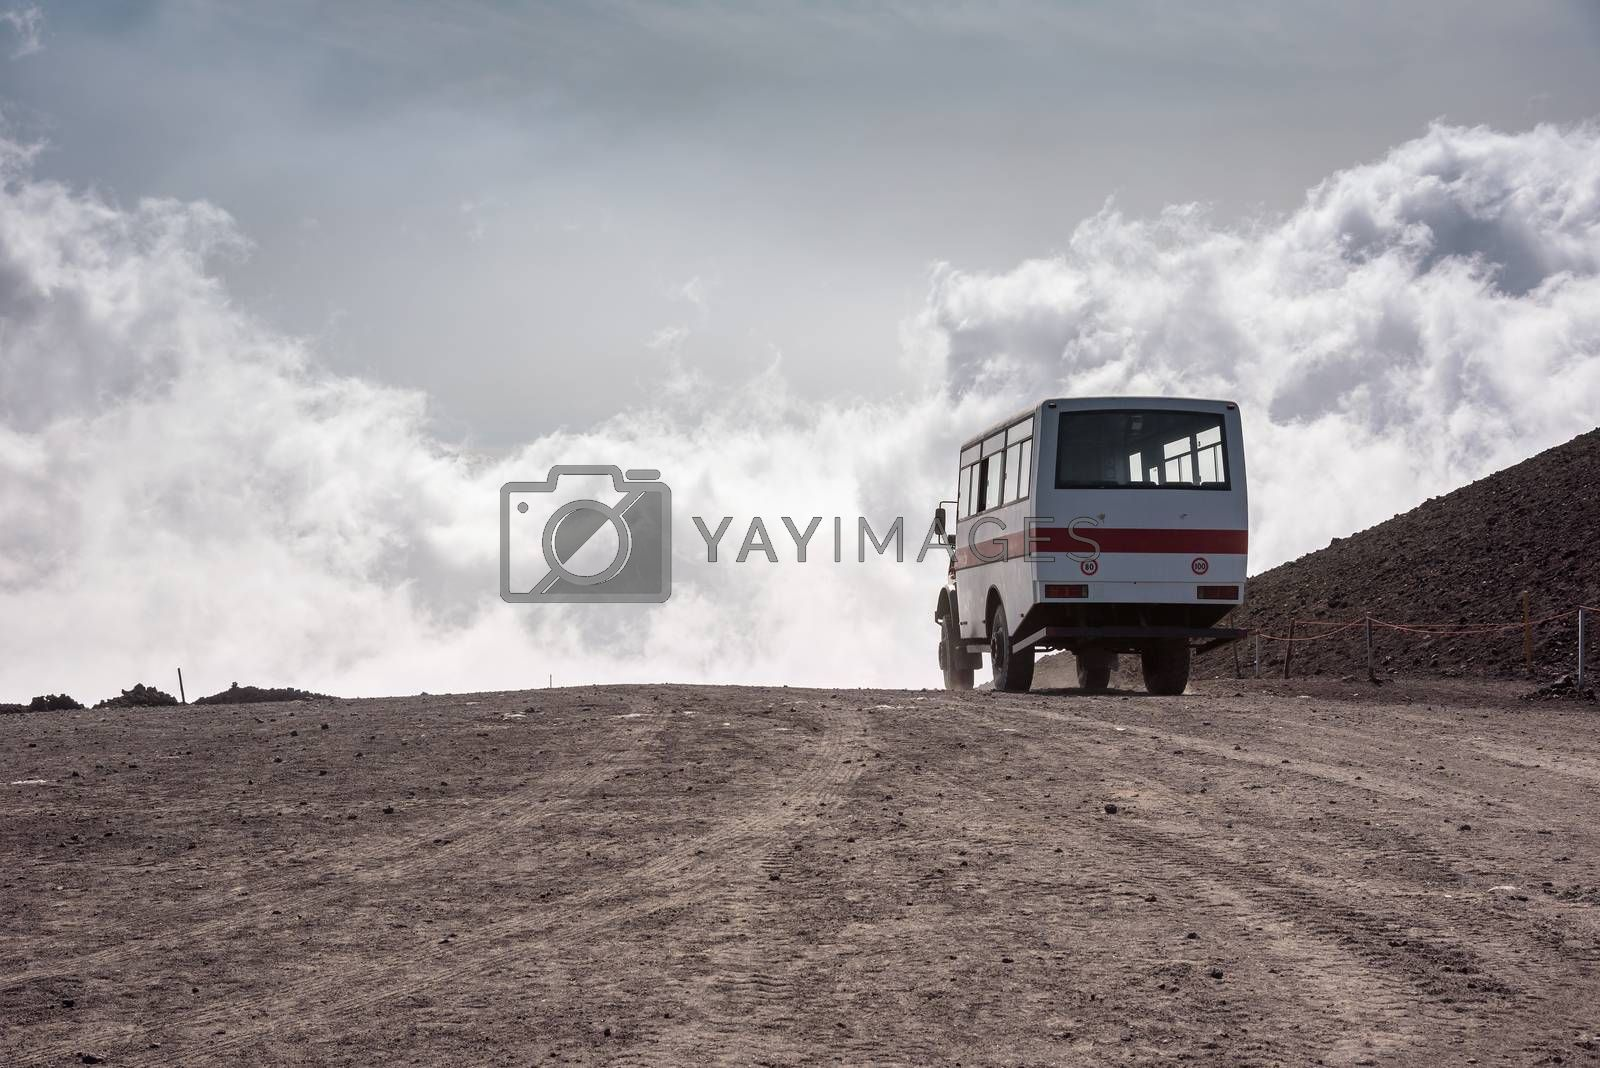 Departing bus from Torre del Filosofo on Mount Etna, Sicily, Italy